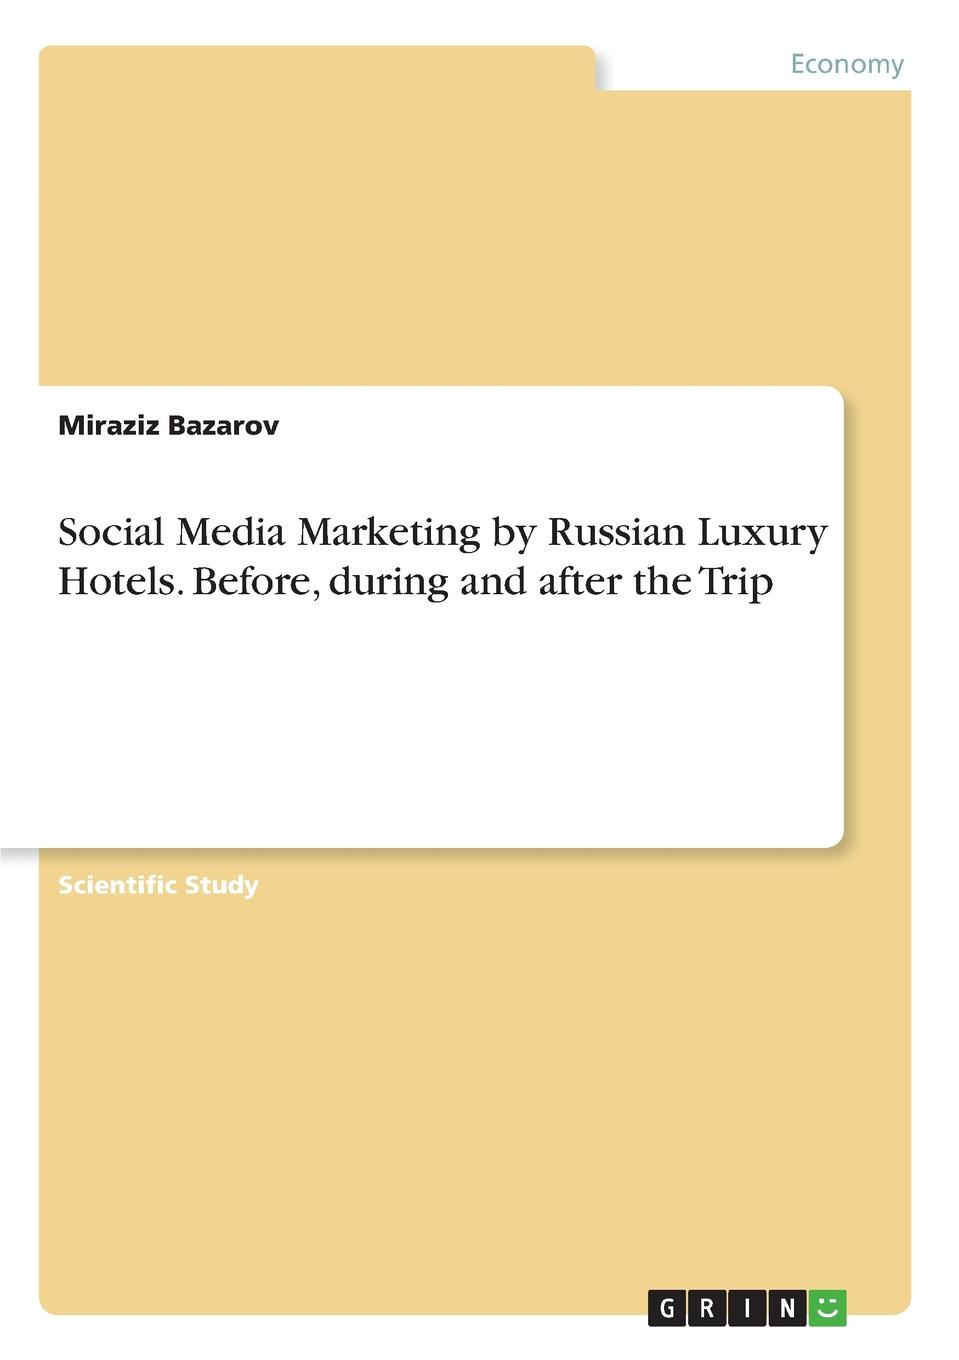 Miraziz Bazarov Social Media Marketing by Russian Luxury Hotels. Before, during and after the Trip цена и фото